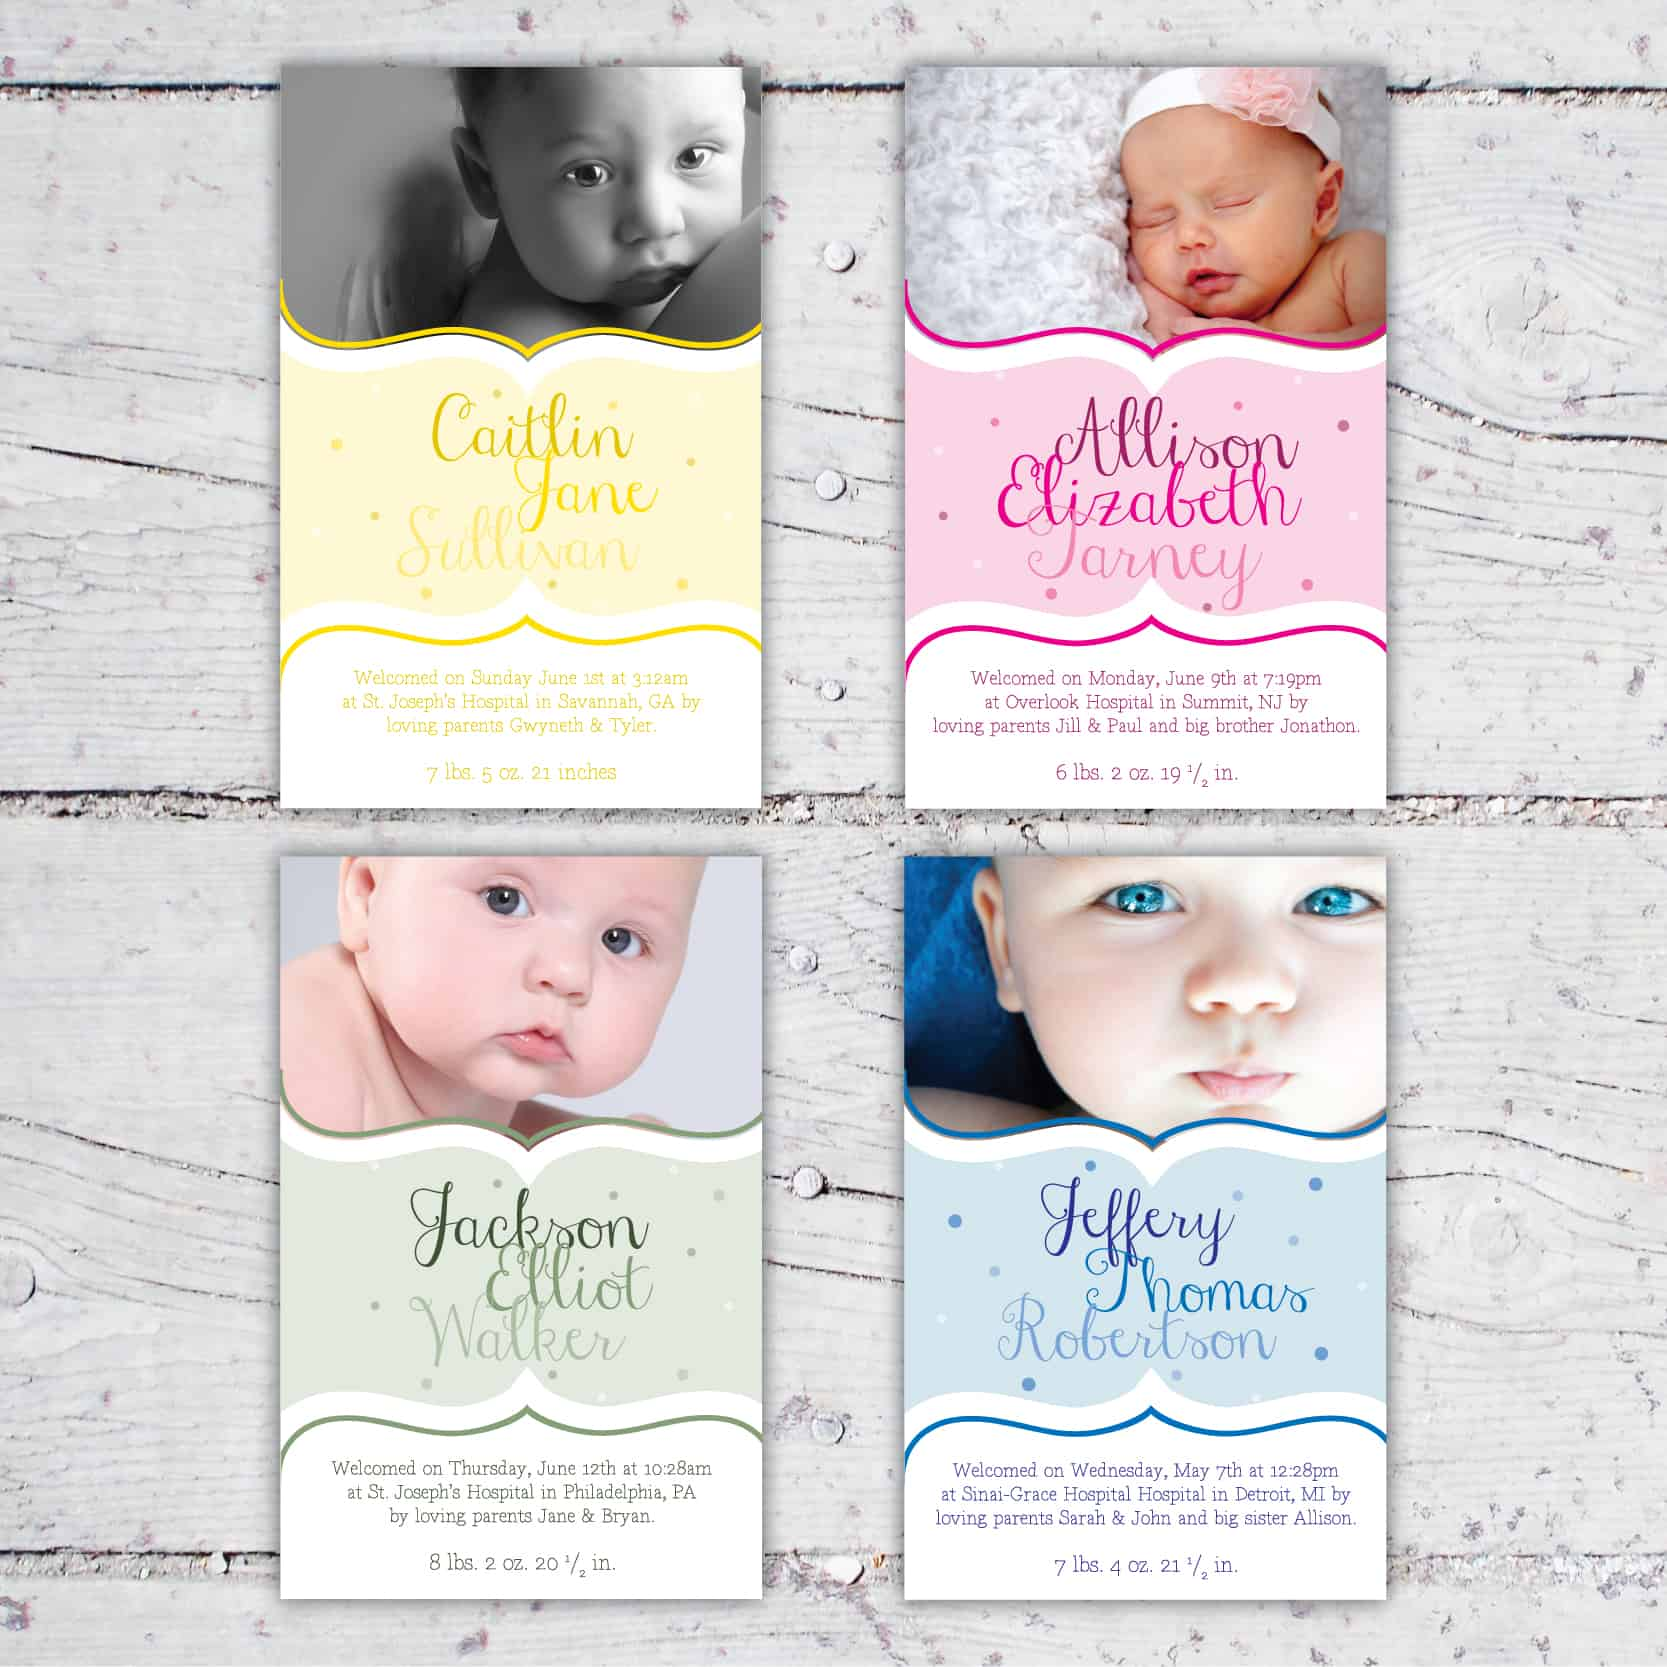 Soft & Whimsical Color Photo Birth Announcement | 5x7 | Digital Download | Printable | Pastel Colorful Baby Photo Custom Birth Announcement